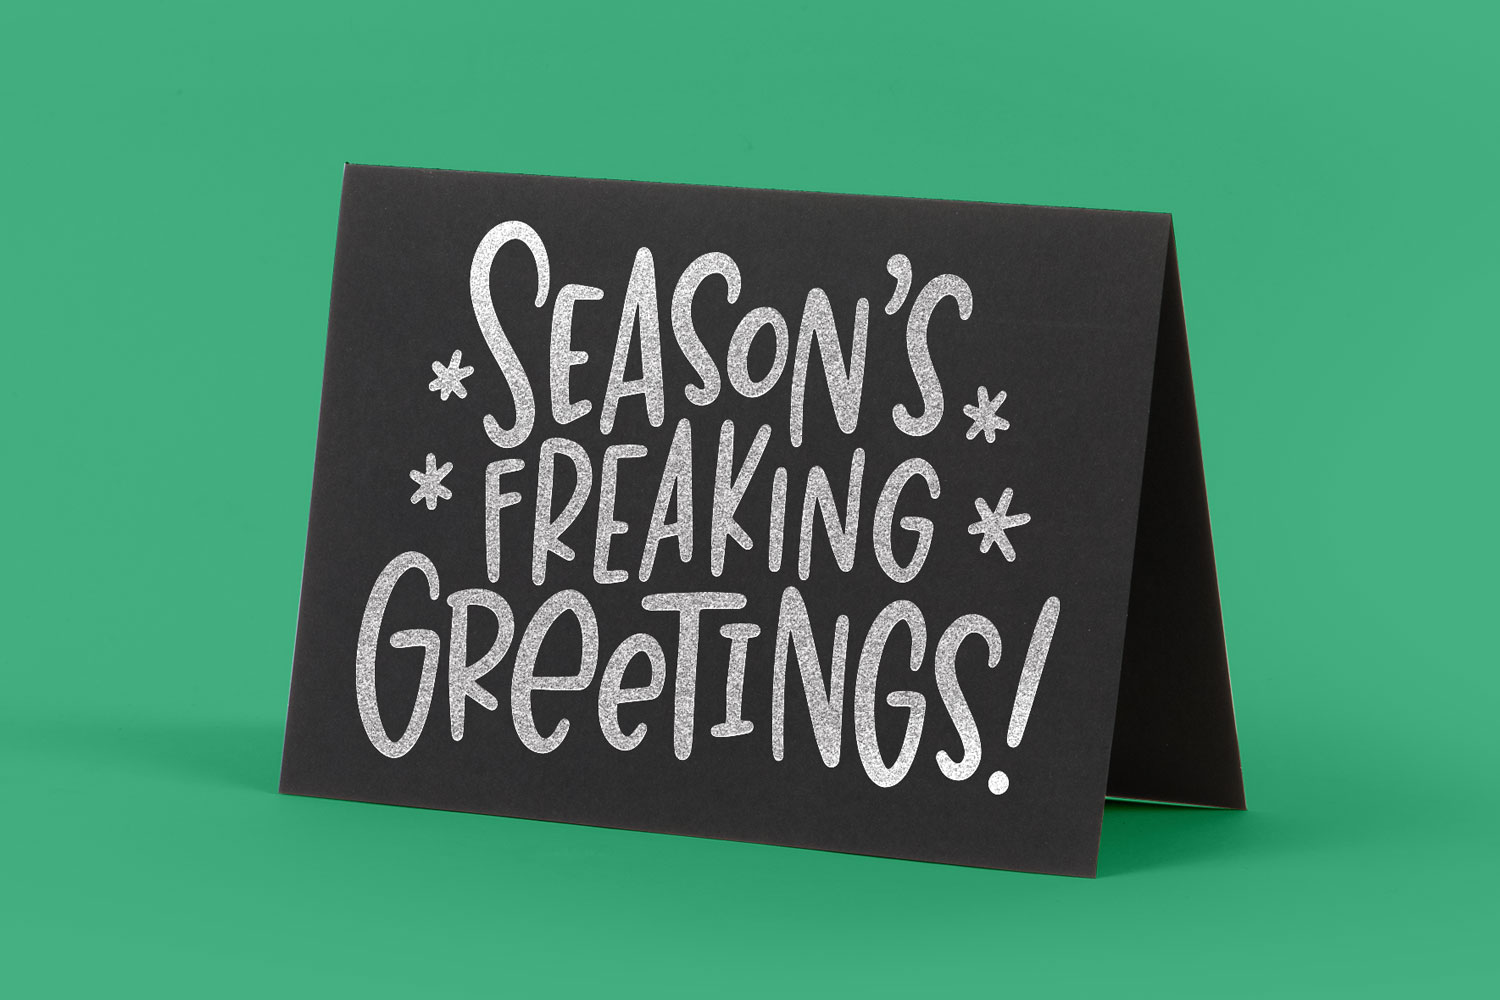 Rude Freaking Holiday Greetings - Christmas and Winter SVGs example image 2